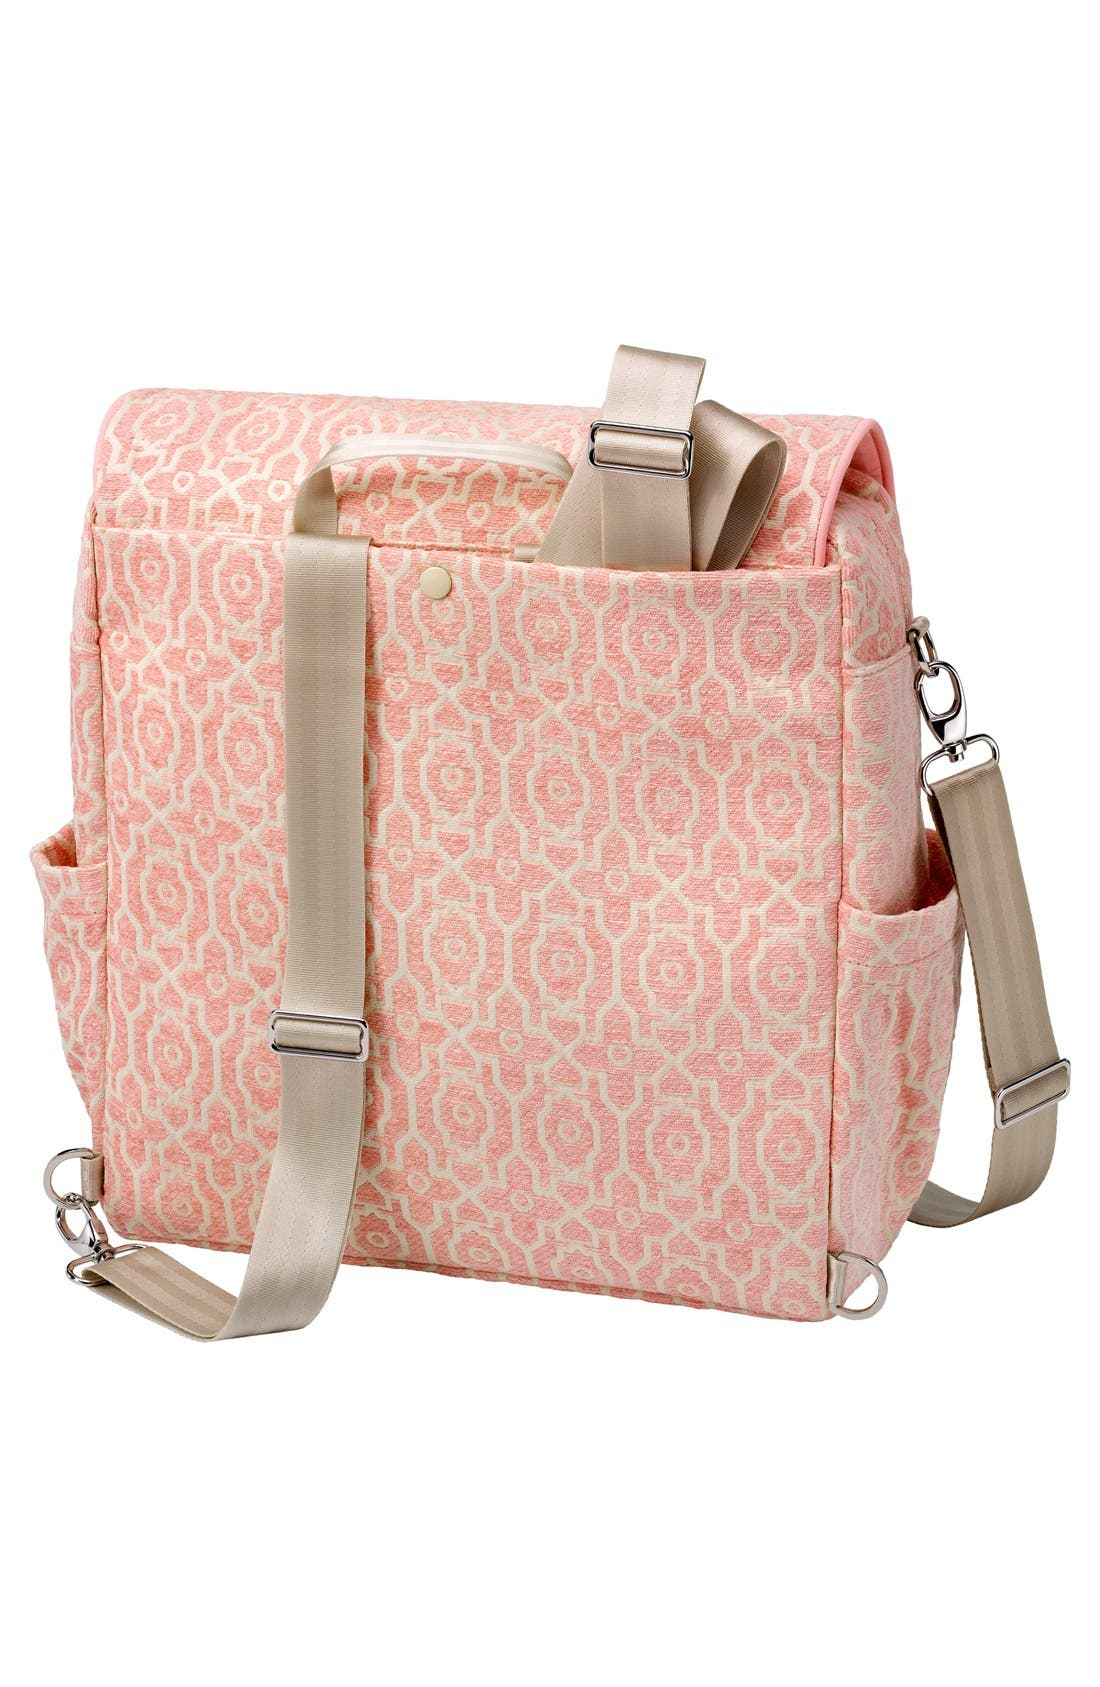 'Boxy' Chenille Convertible Diaper Backpack,                             Alternate thumbnail 2, color,                             Sweet Rose